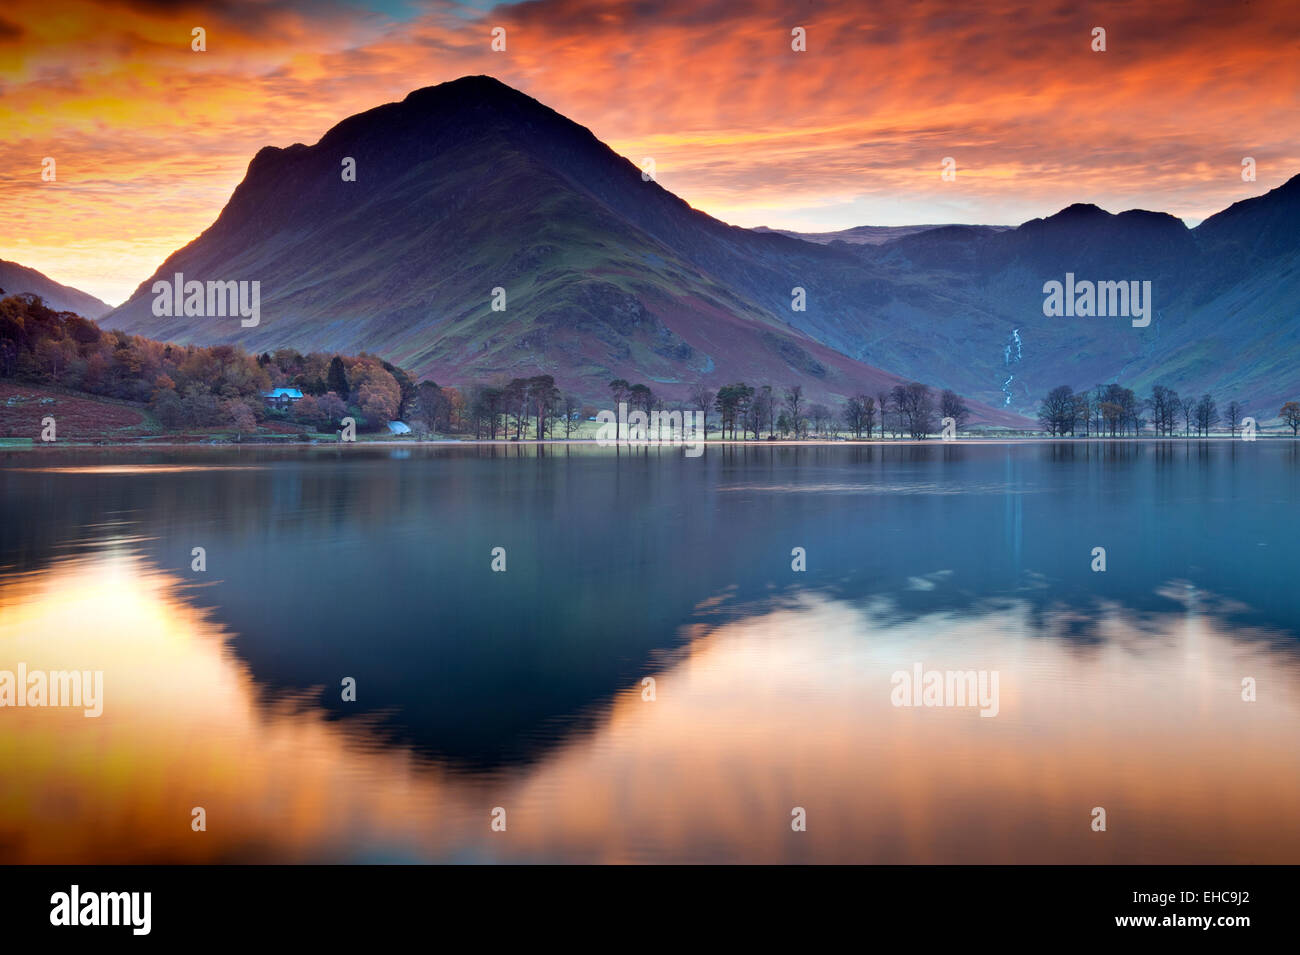 Spectacular Sunrise over Buttermere & Fleetwith Pike, Lake District National Park, Cumbria, England, UK - Stock Image